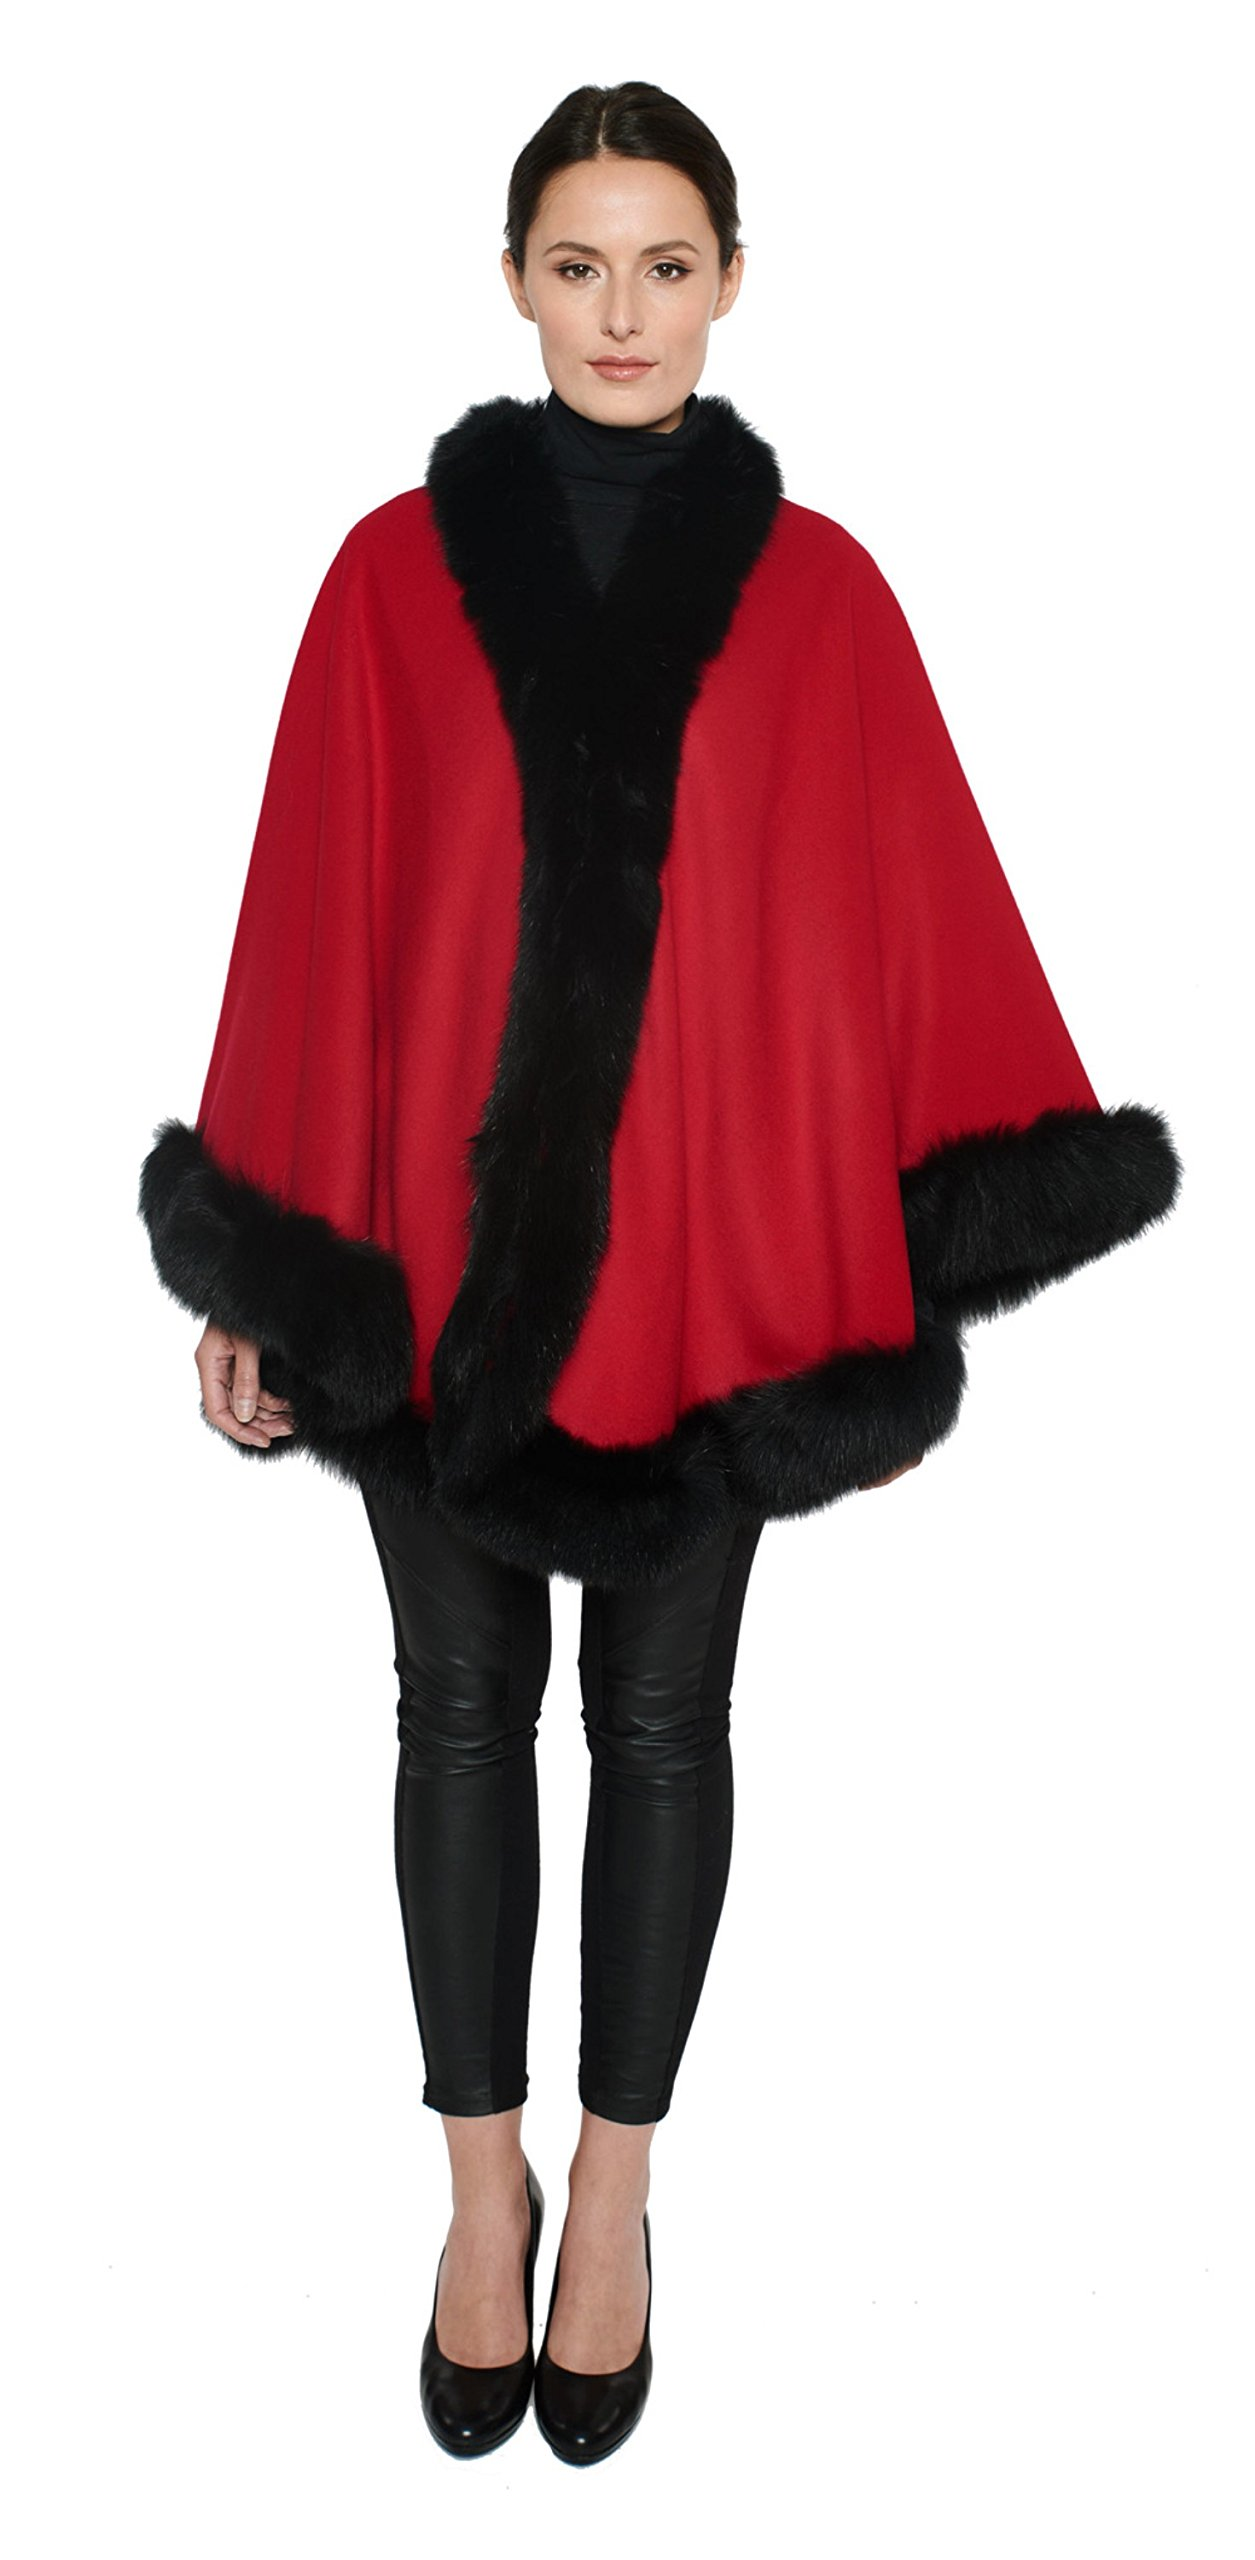 Cashmere Pashmina Group: Cashmere Cape with genuine Fox Fur Trim all around (Lipstick Red/ Black) by Cashmere Pashmina Group (Image #1)